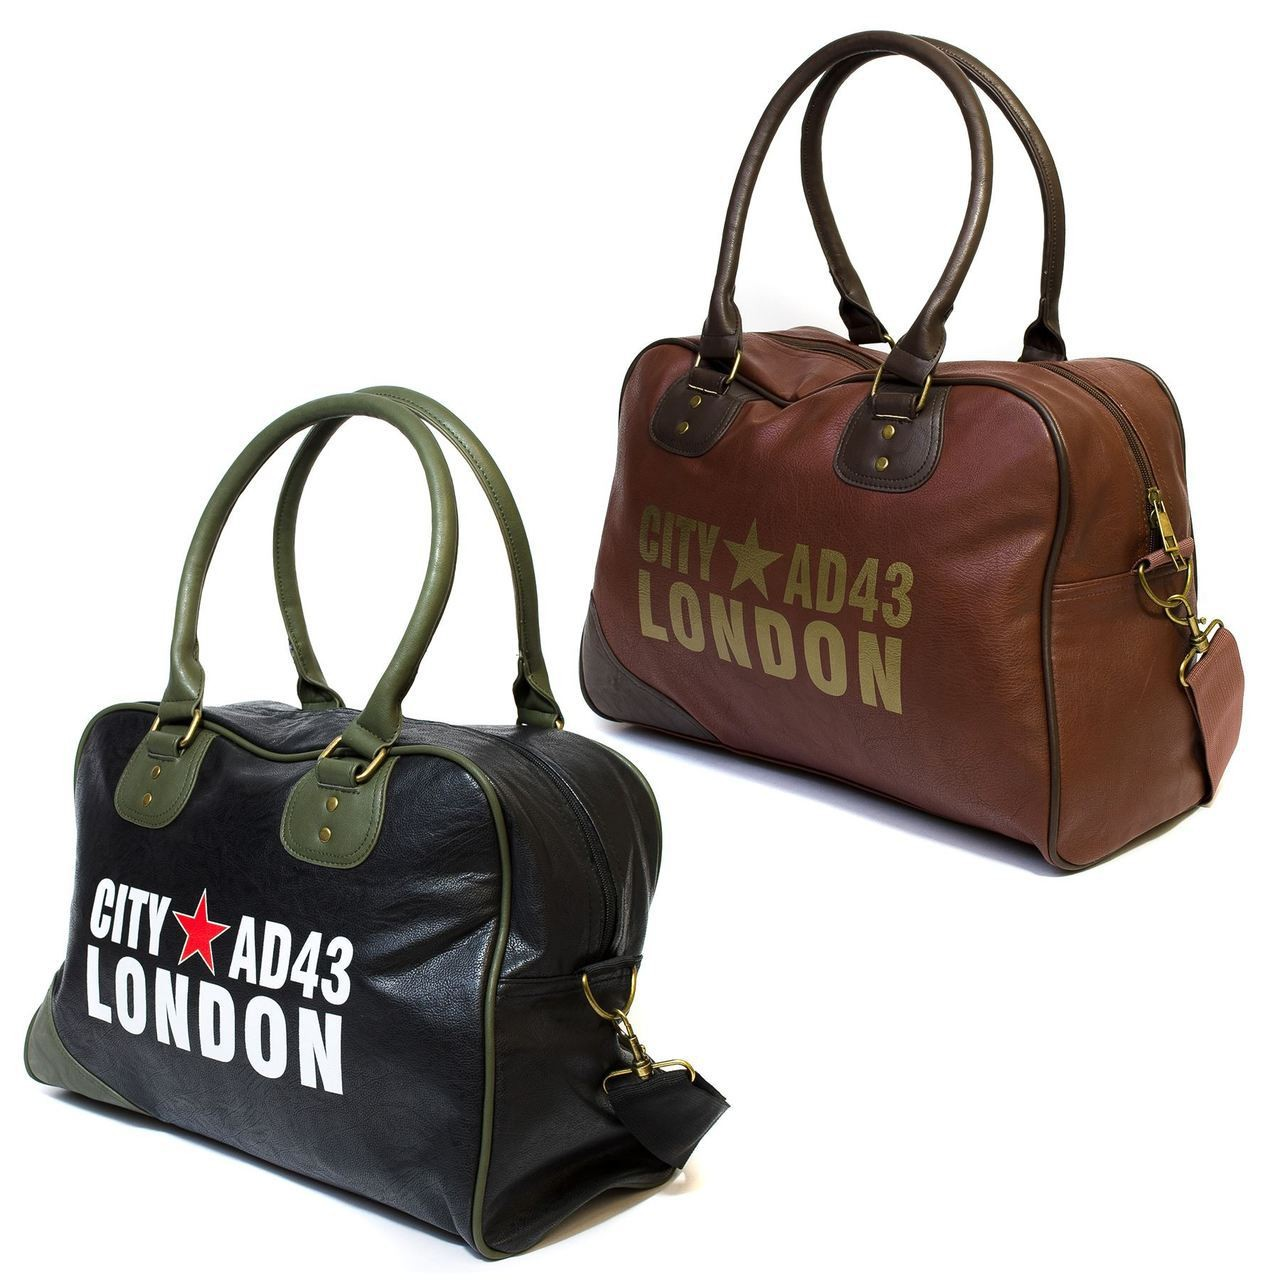 London City Vintage Design Shoulder Handbag - Moda-london.cz cee02512d6c